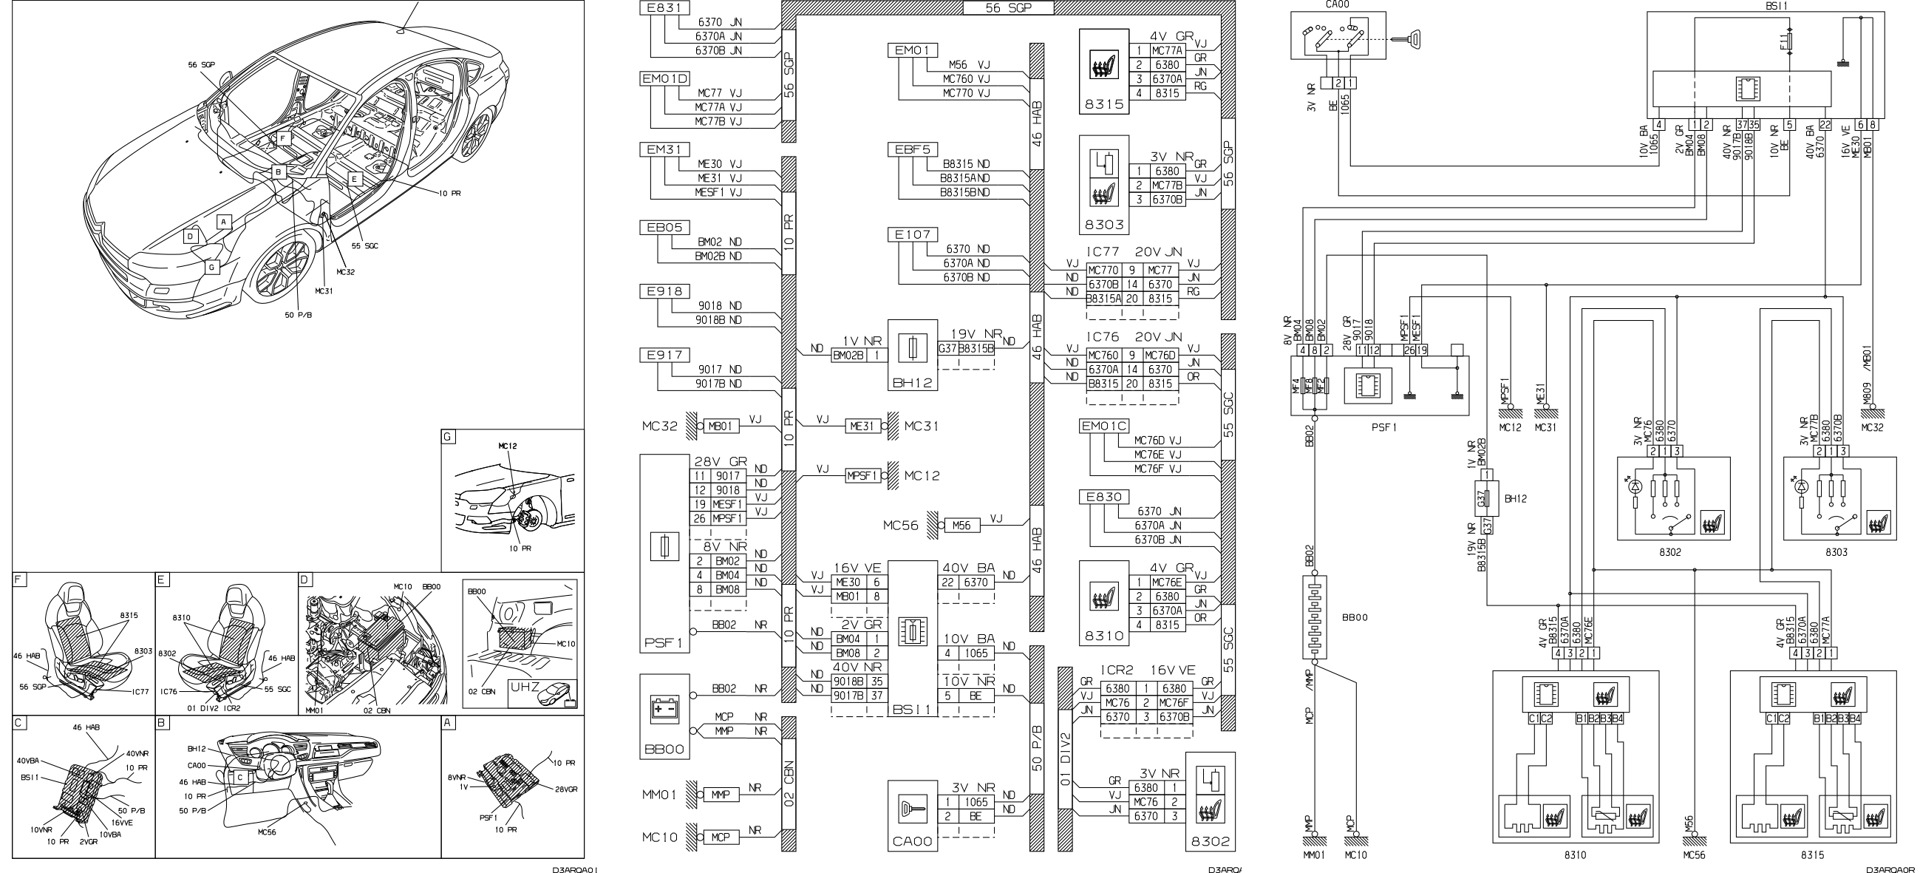 diagram] citroen c5 owners workshop wiring diagram full version hd quality wiring  diagram - diagramsimasj.laserdrone.it  diagramsimasj.laserdrone.it